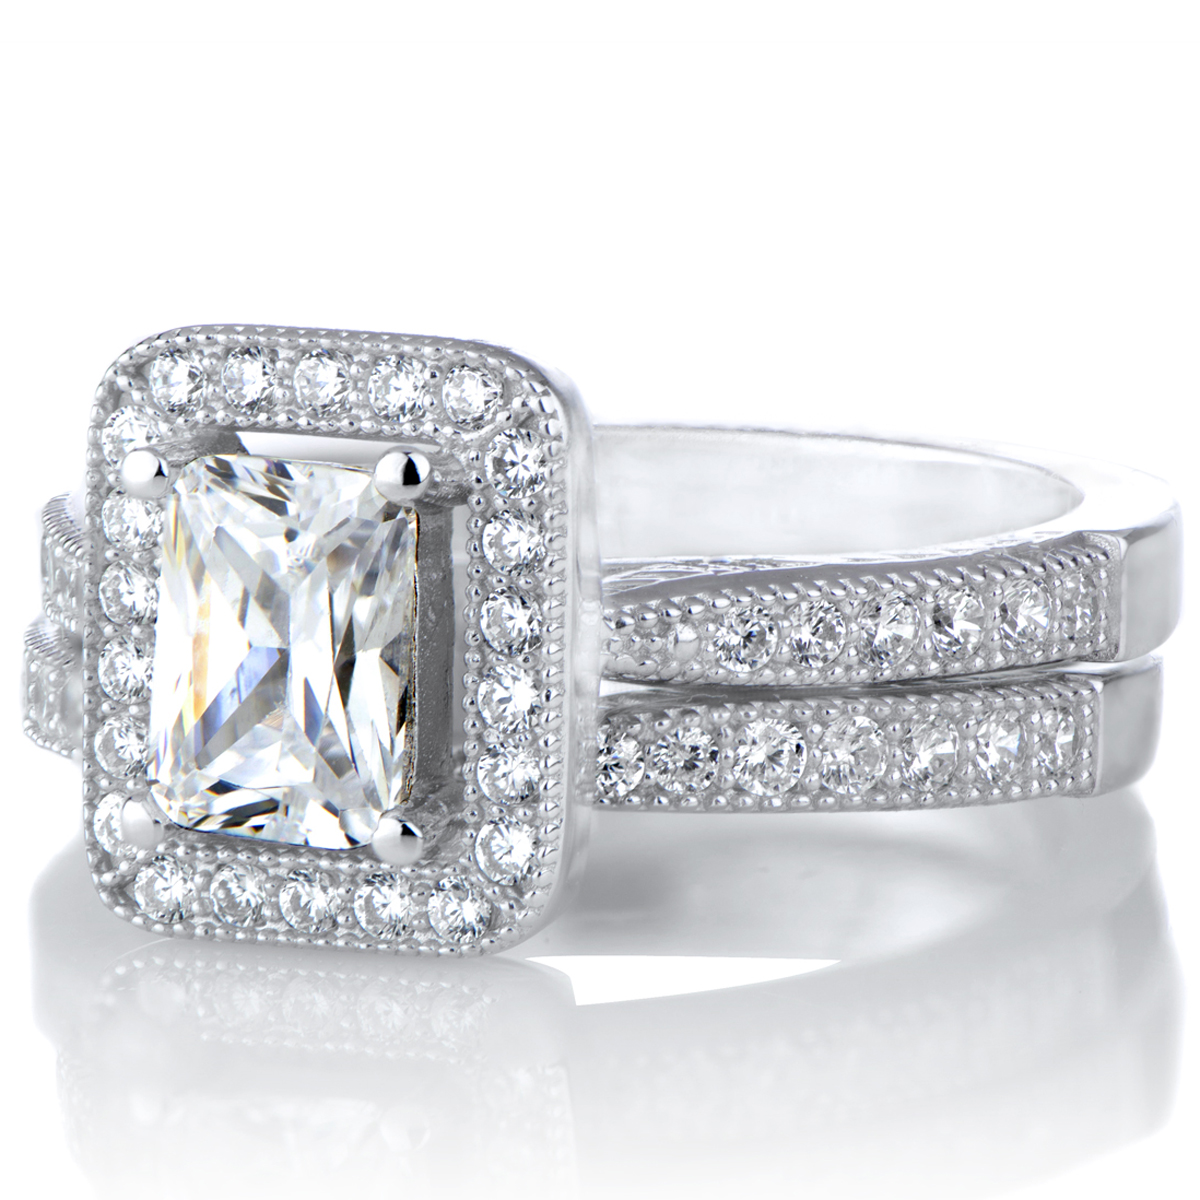 kilma 39 s emerald cut cz halo wedding ring set